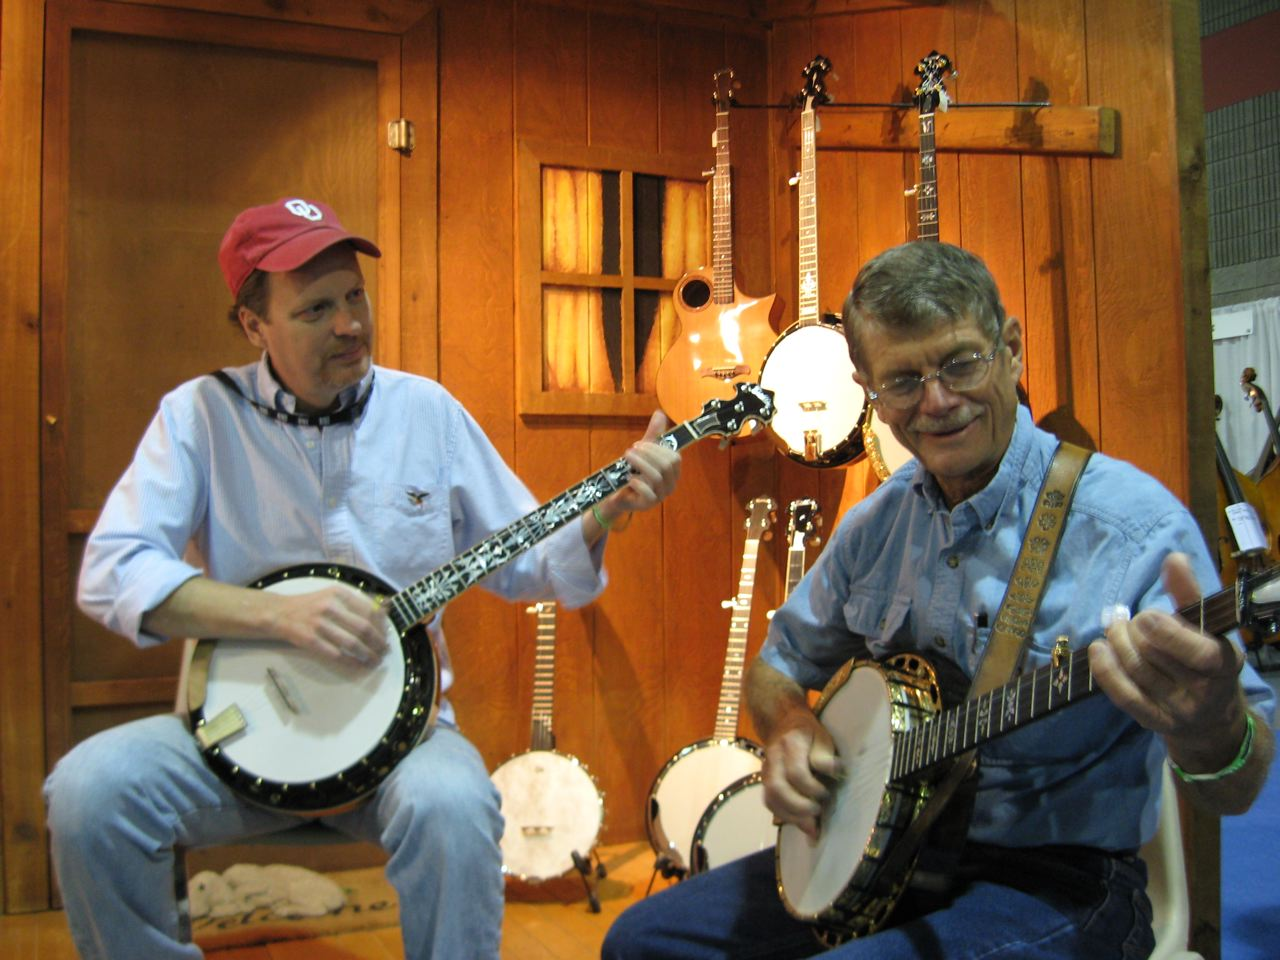 ROB BISHLINE  BANJO, GUITAR   Rob has been teaching since he was 17 years old. (that was a long time ago!) Rob is not only the builder of Bishline Banjos, he still finds time to teach advanced banjo and acoustic guitar.